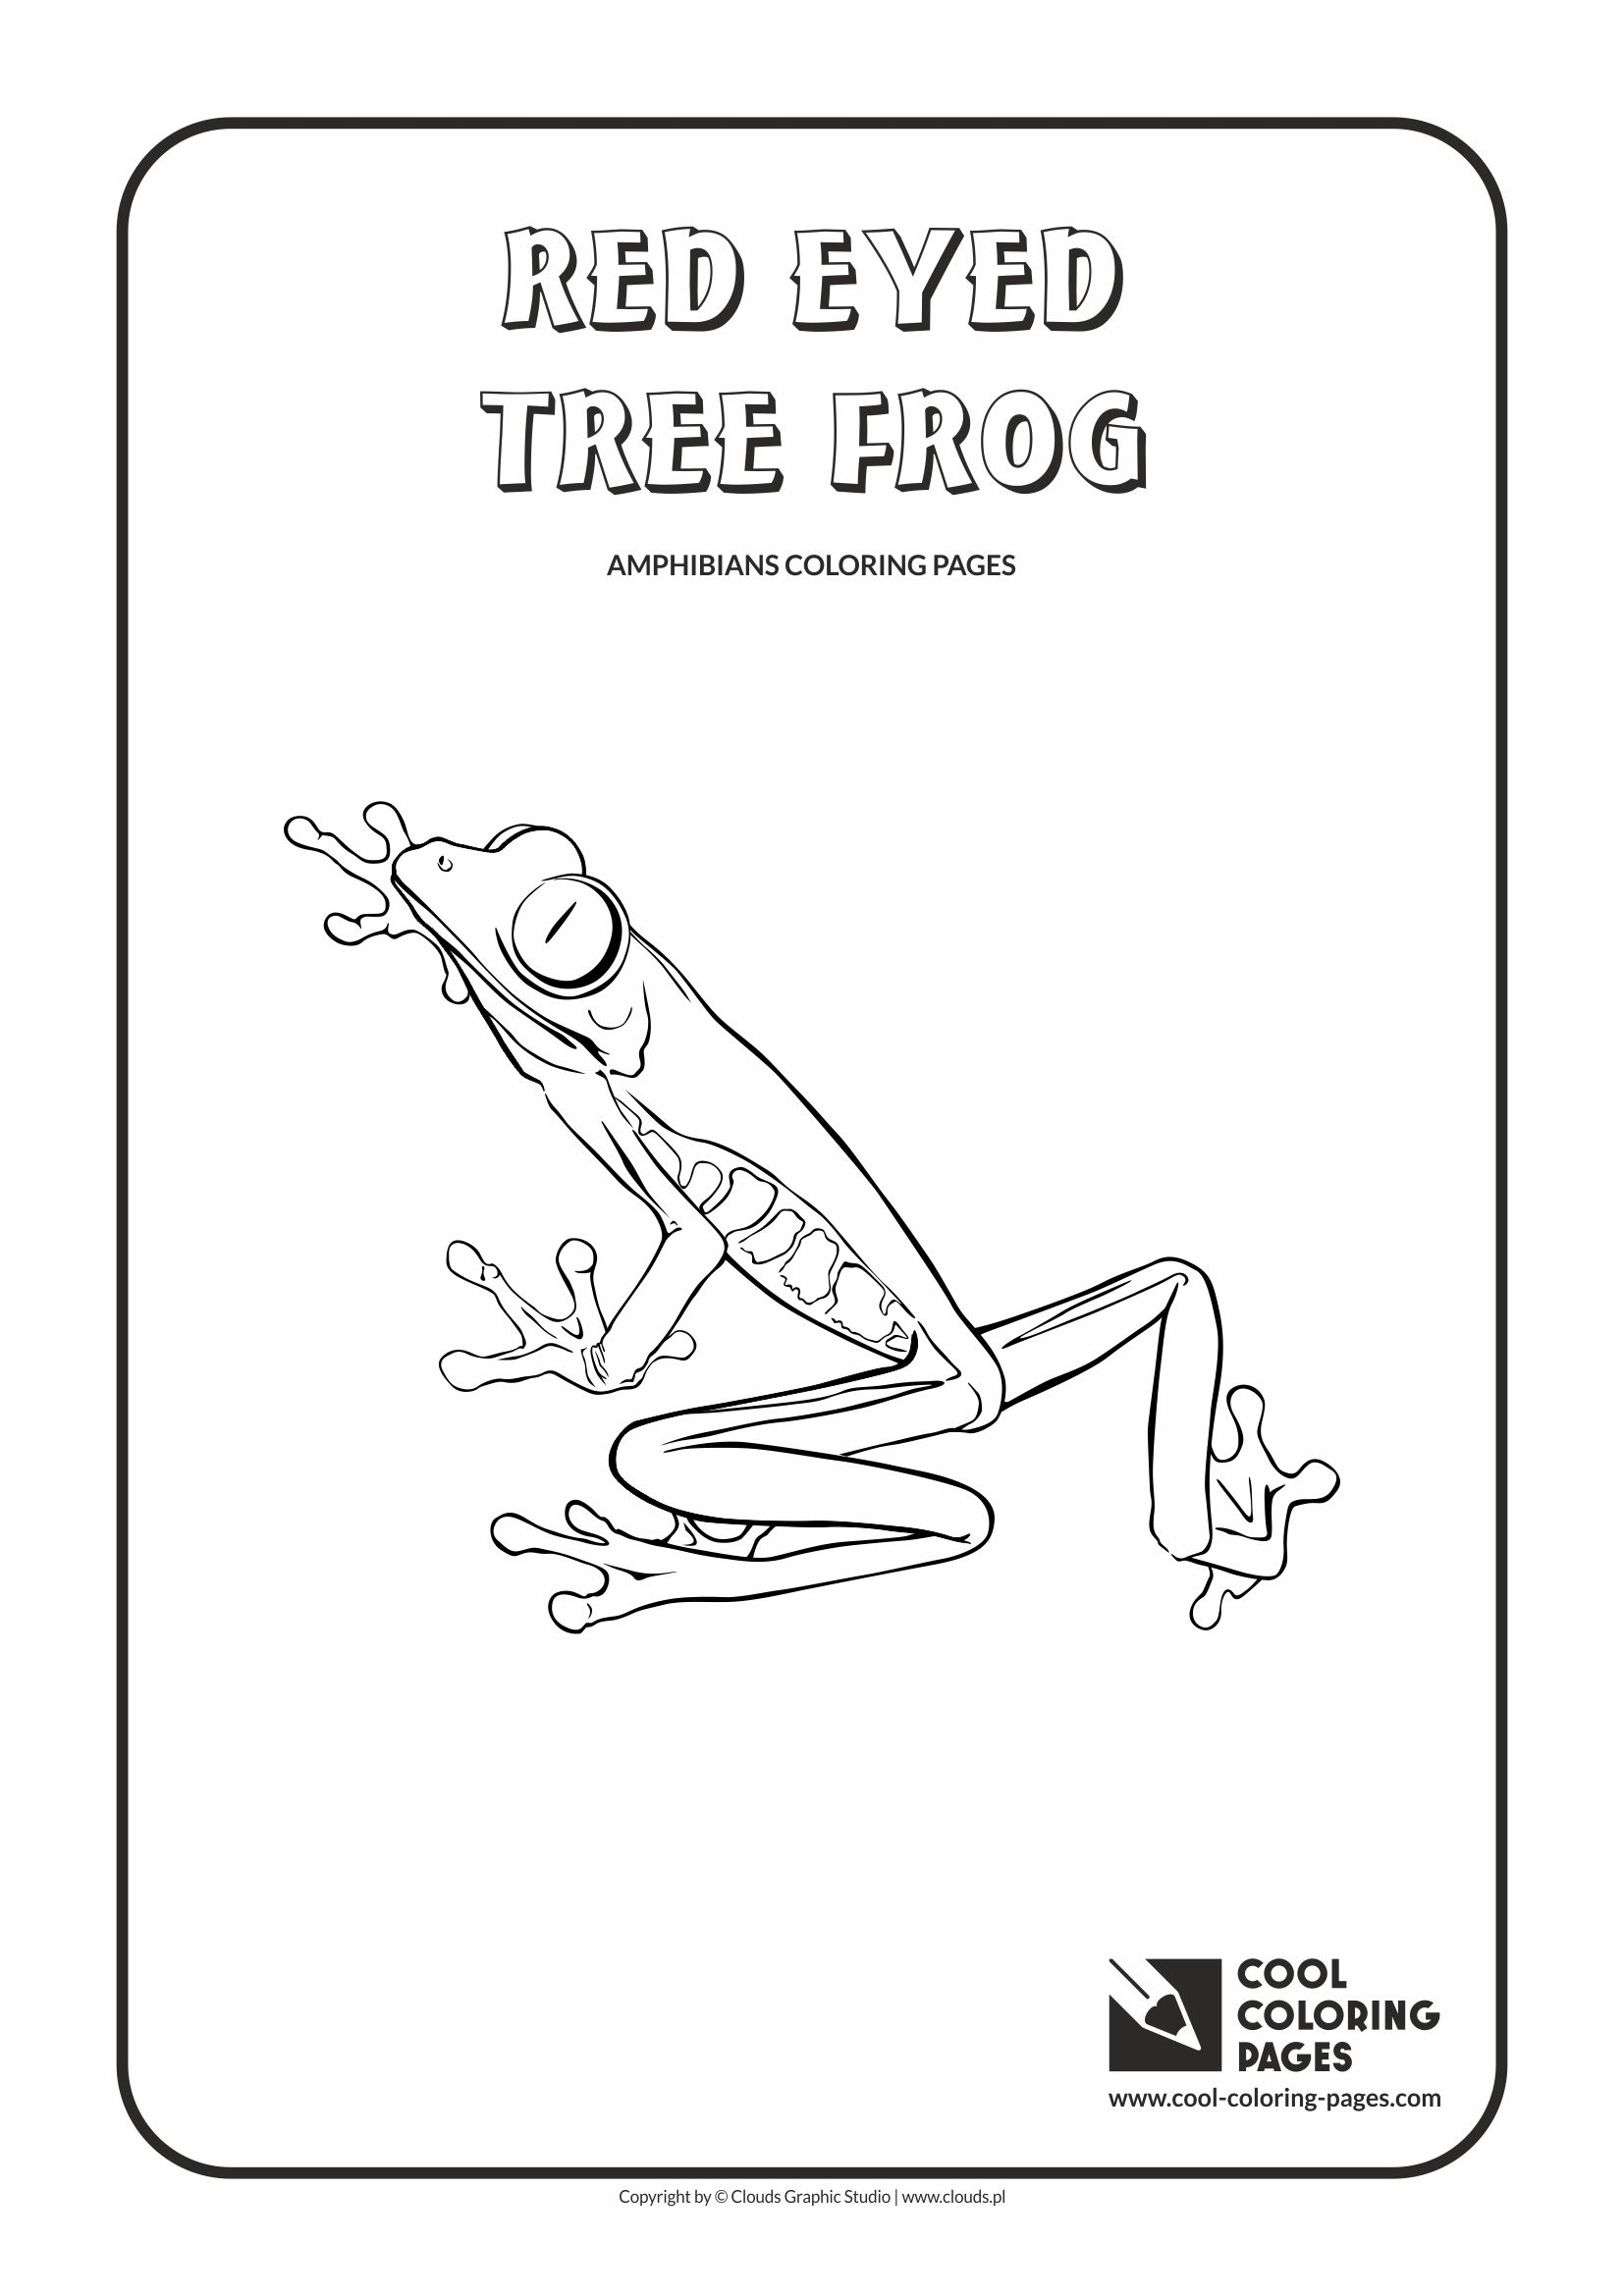 Cool Coloring Pages - Animals / Red eyed tree frog / Coloring page with red eyed tree frog